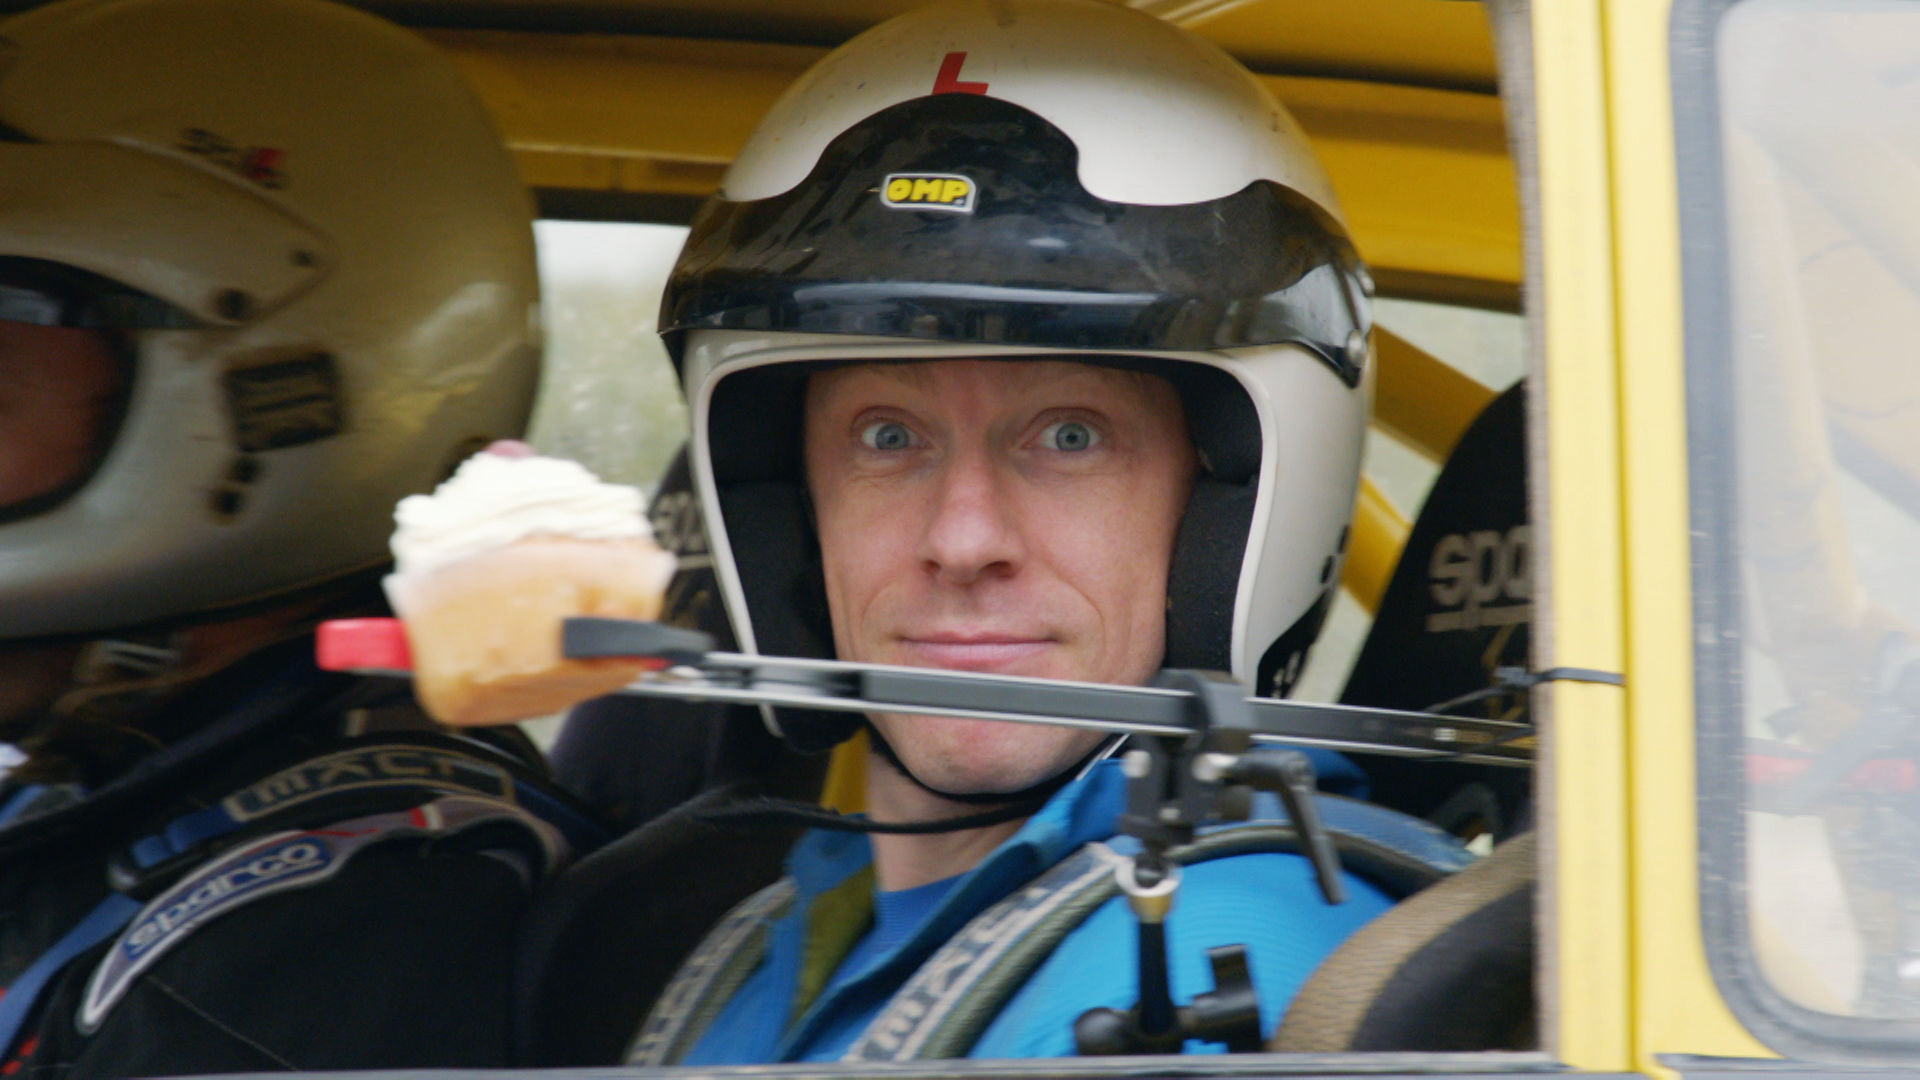 CBBC Beyond Bionic - Andy Torbet in a racing car with a cupcake on a stick